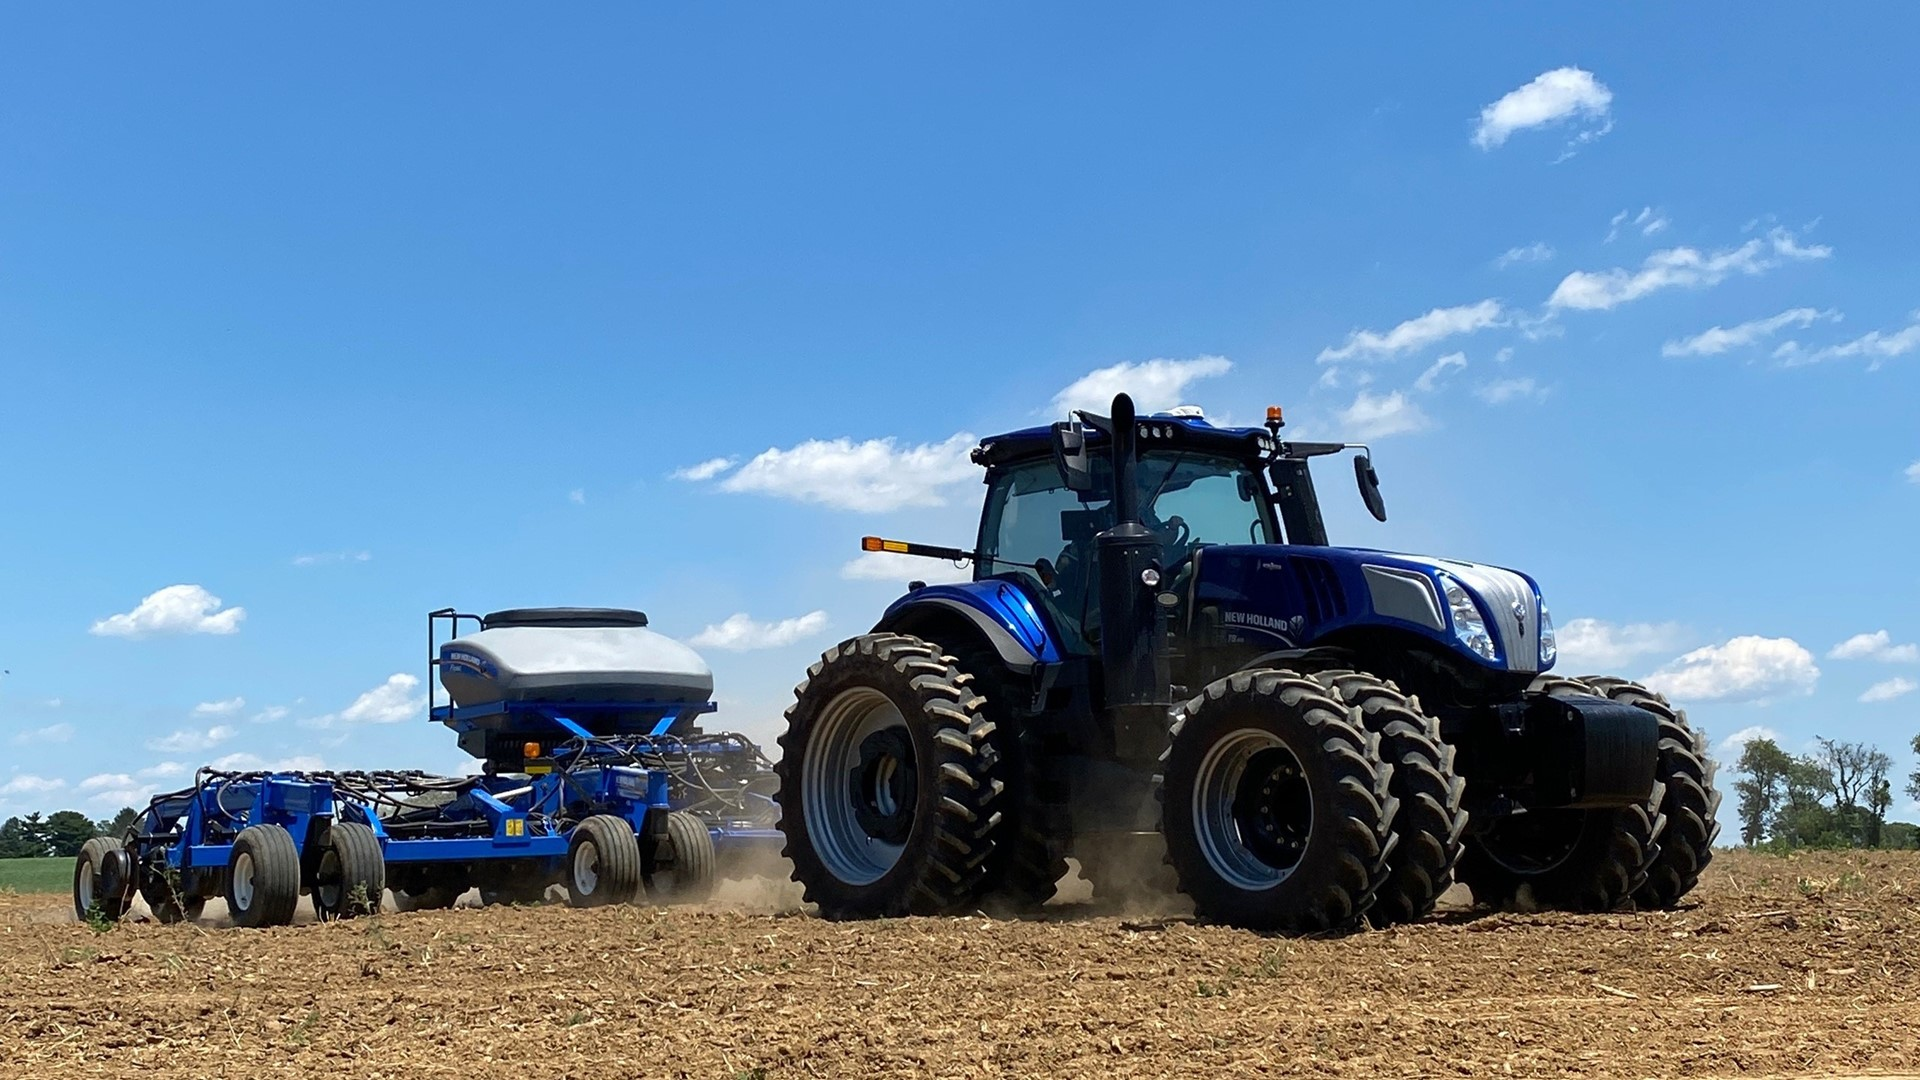 New Holland T8 Genesis planting industrial hemp at the brand's test plot in Pennsylvania, USA